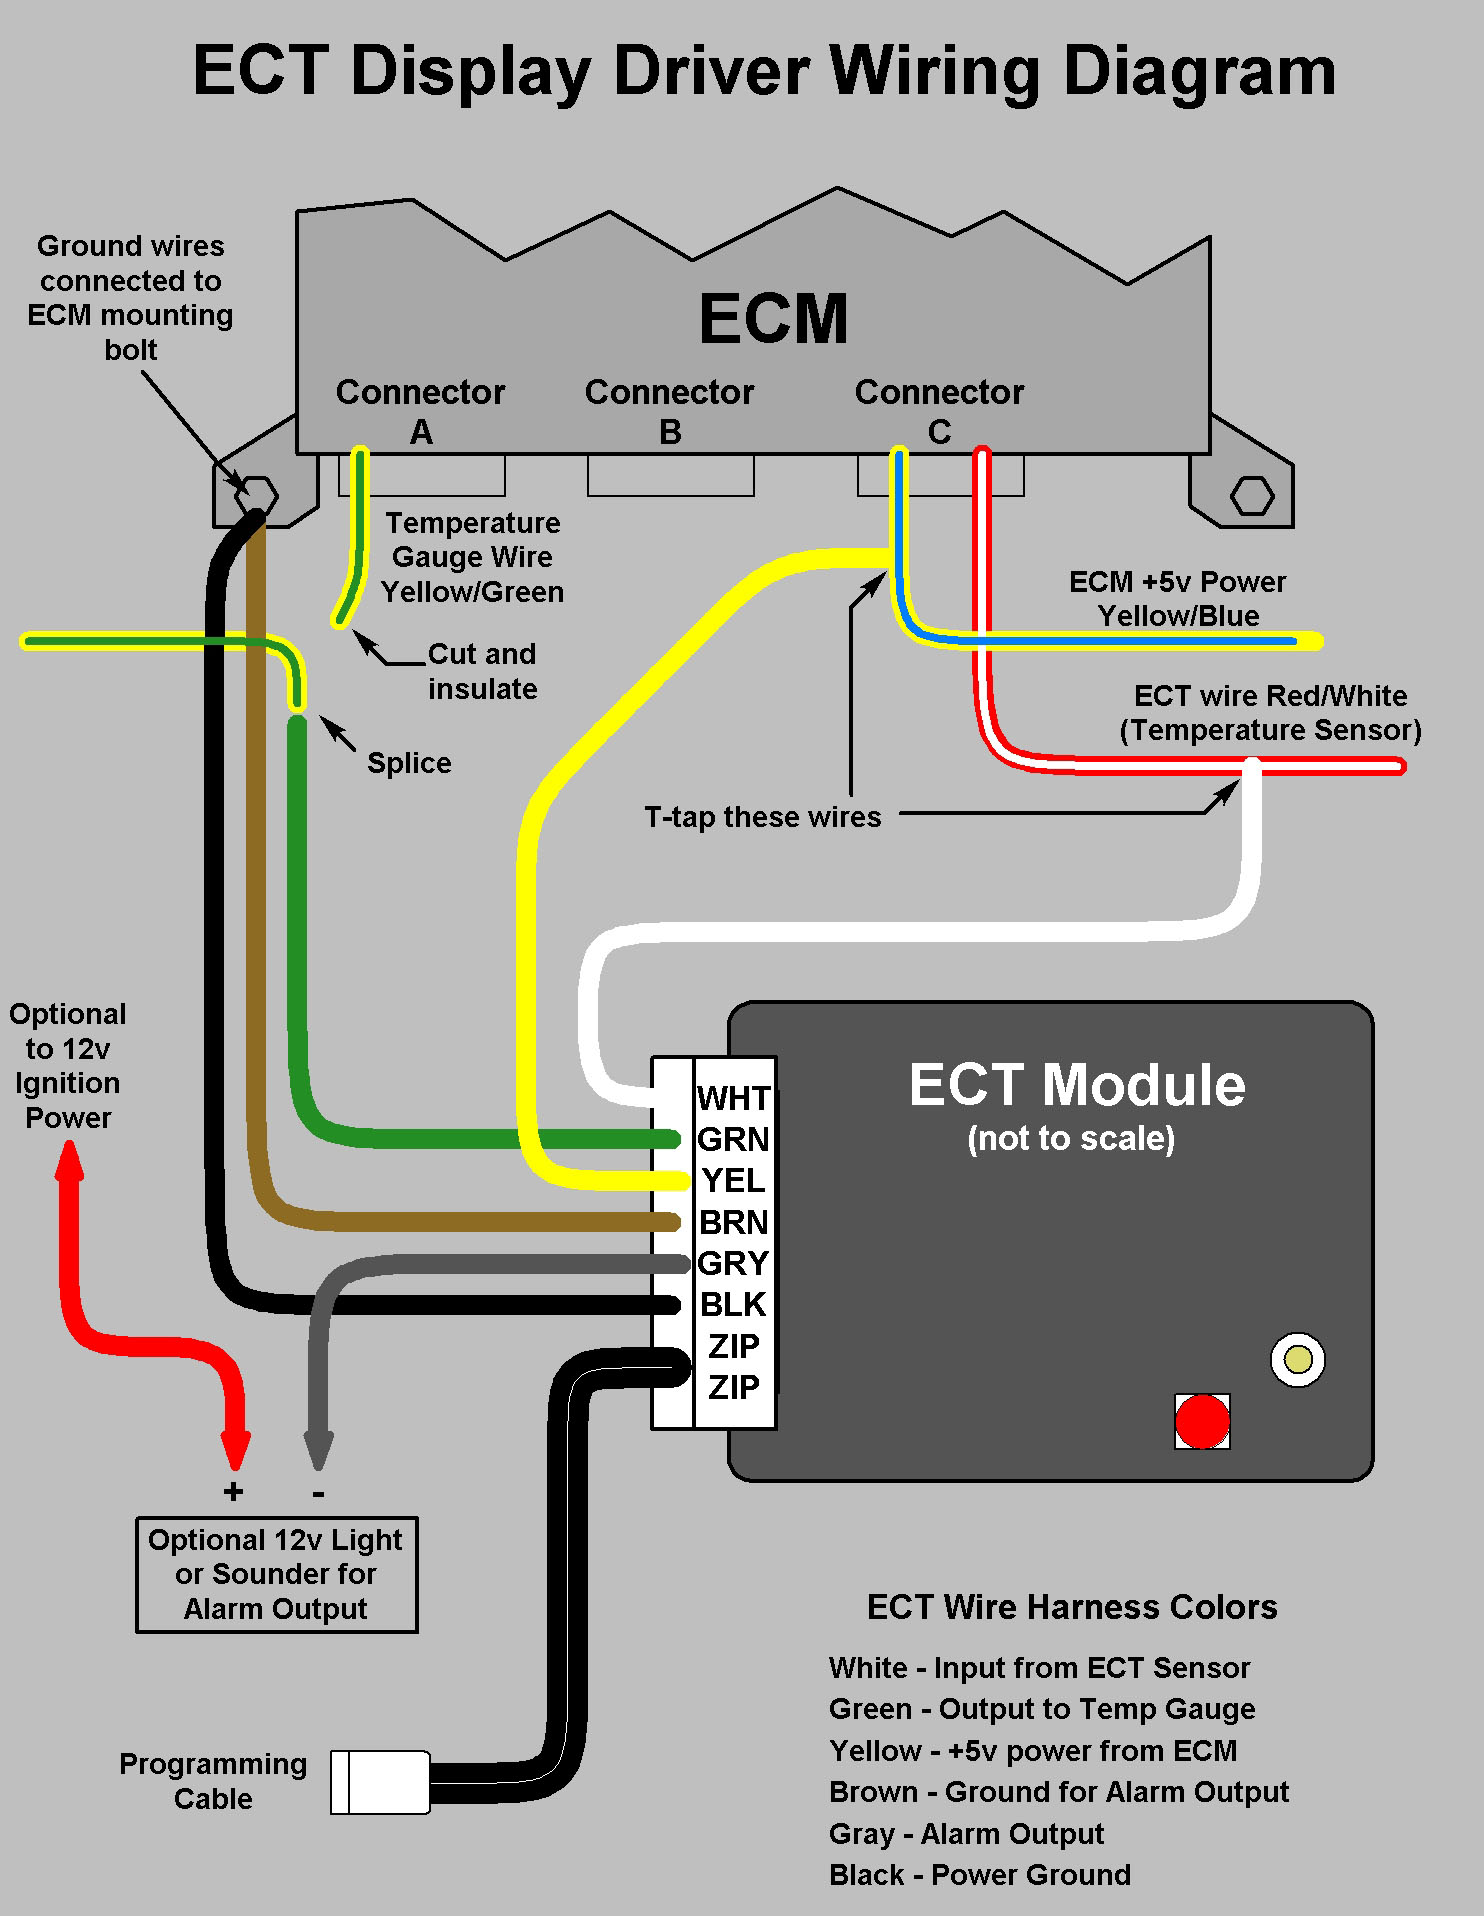 ECT wiring diagram aem ems 4 wiring diagram aem ems fox body mustangs \u2022 free wiring ems stinger wiring diagram at reclaimingppi.co